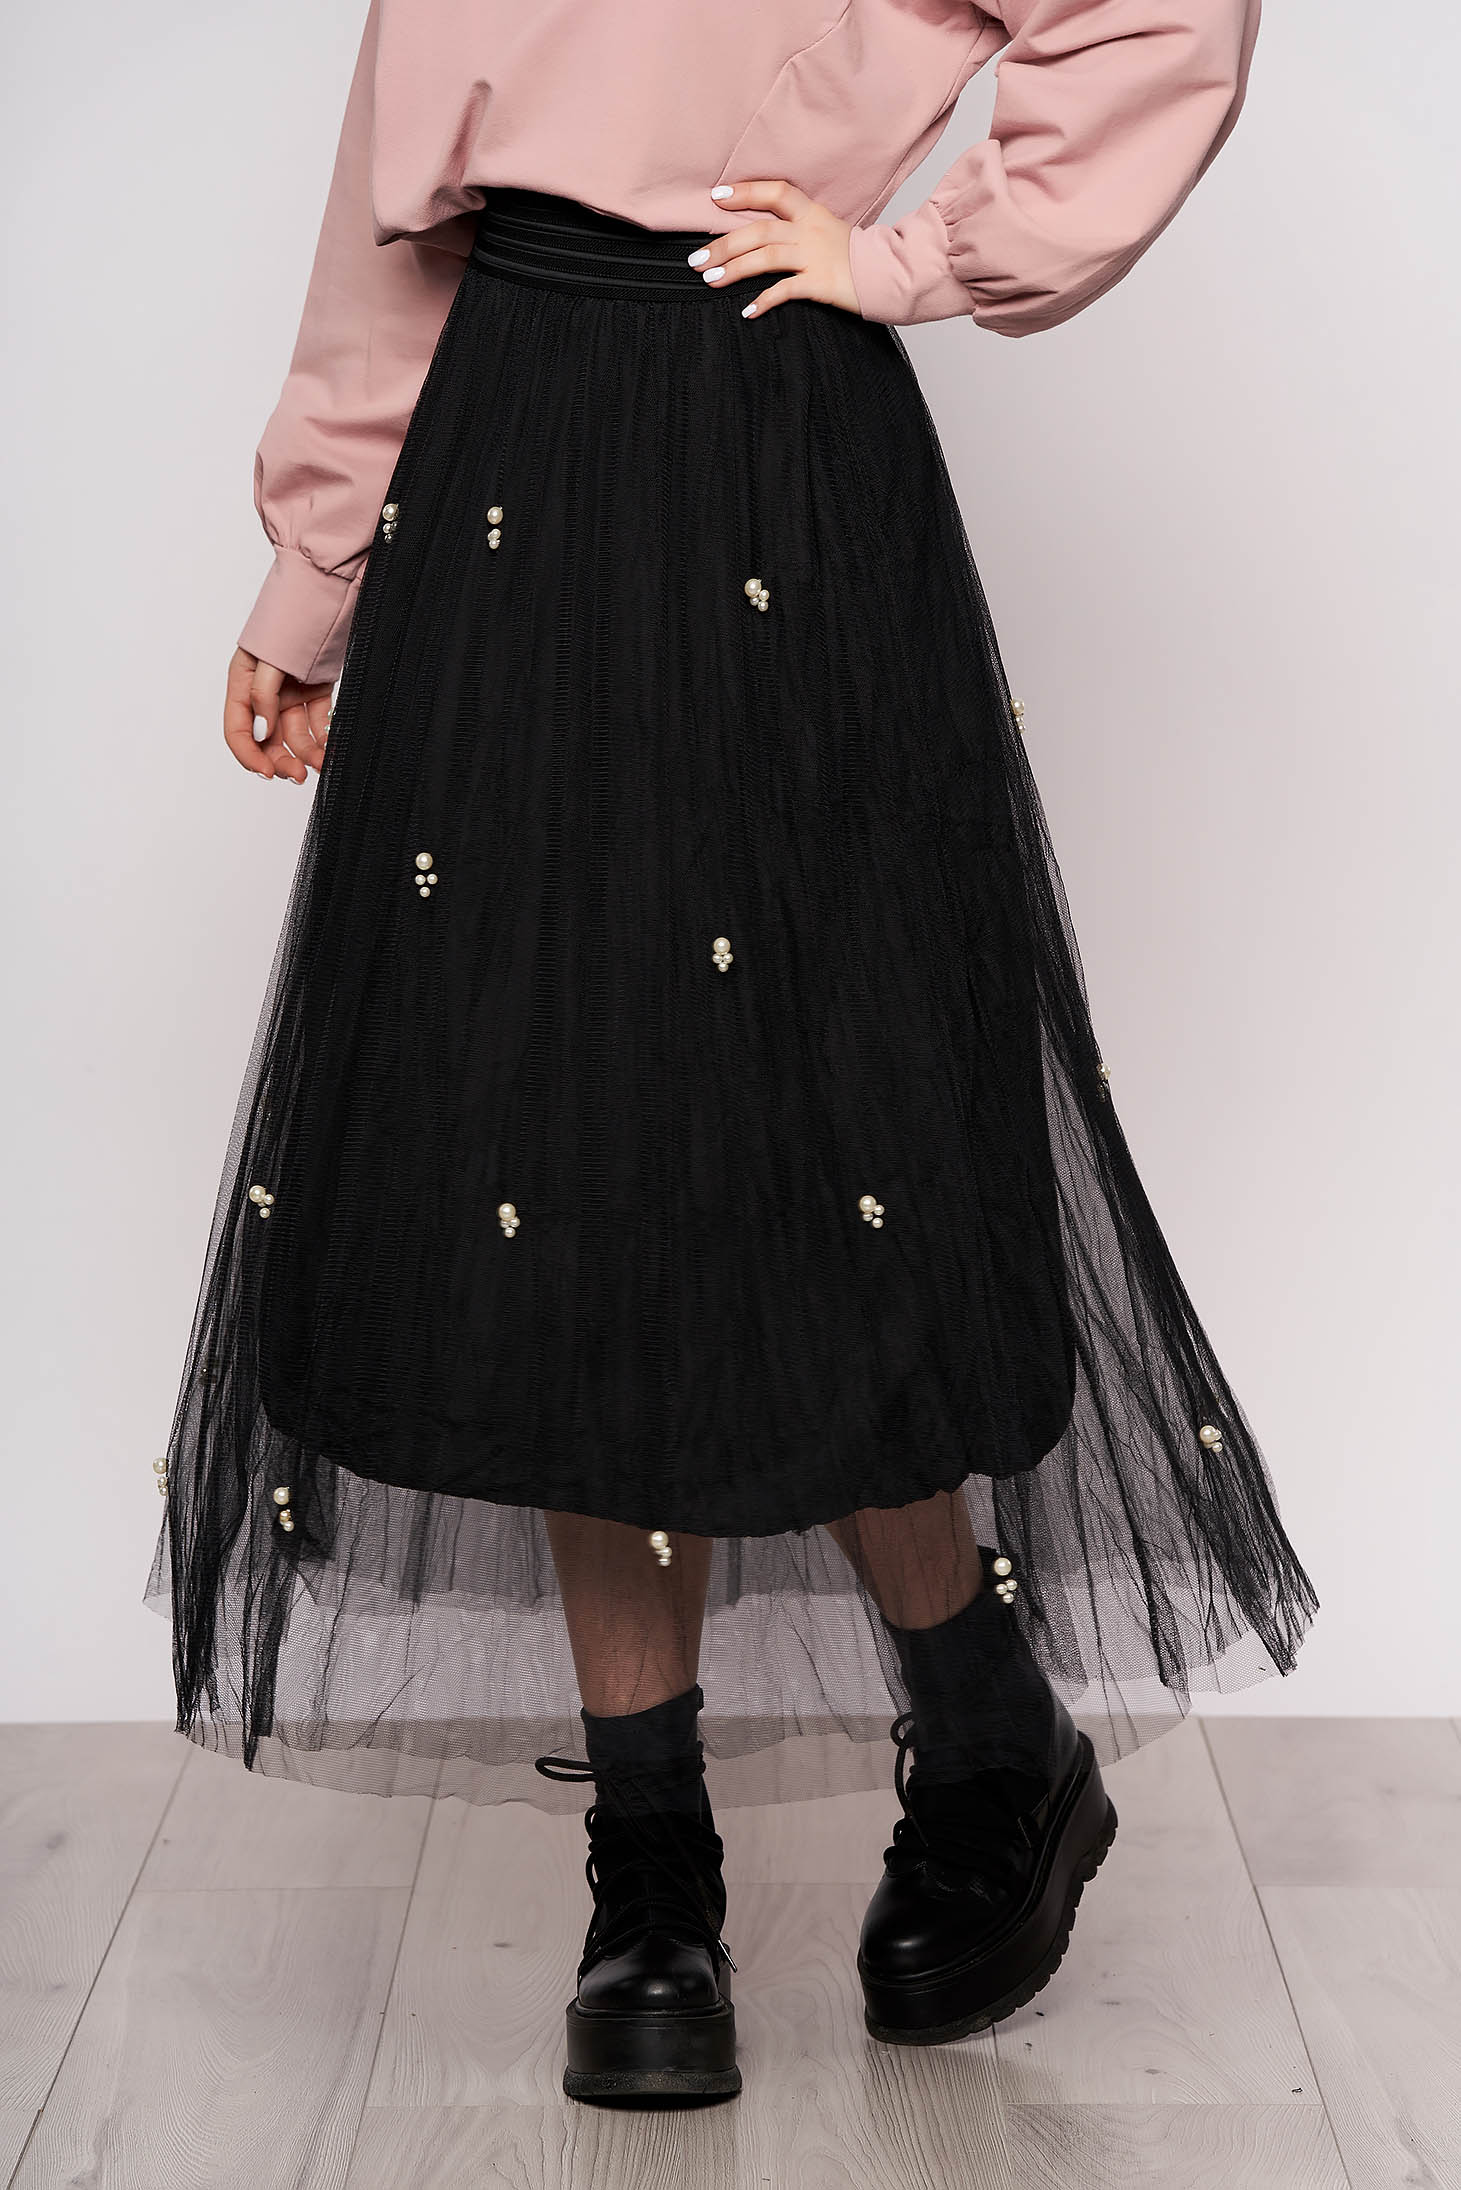 Black casual high waisted midi skirt from tulle with pearls